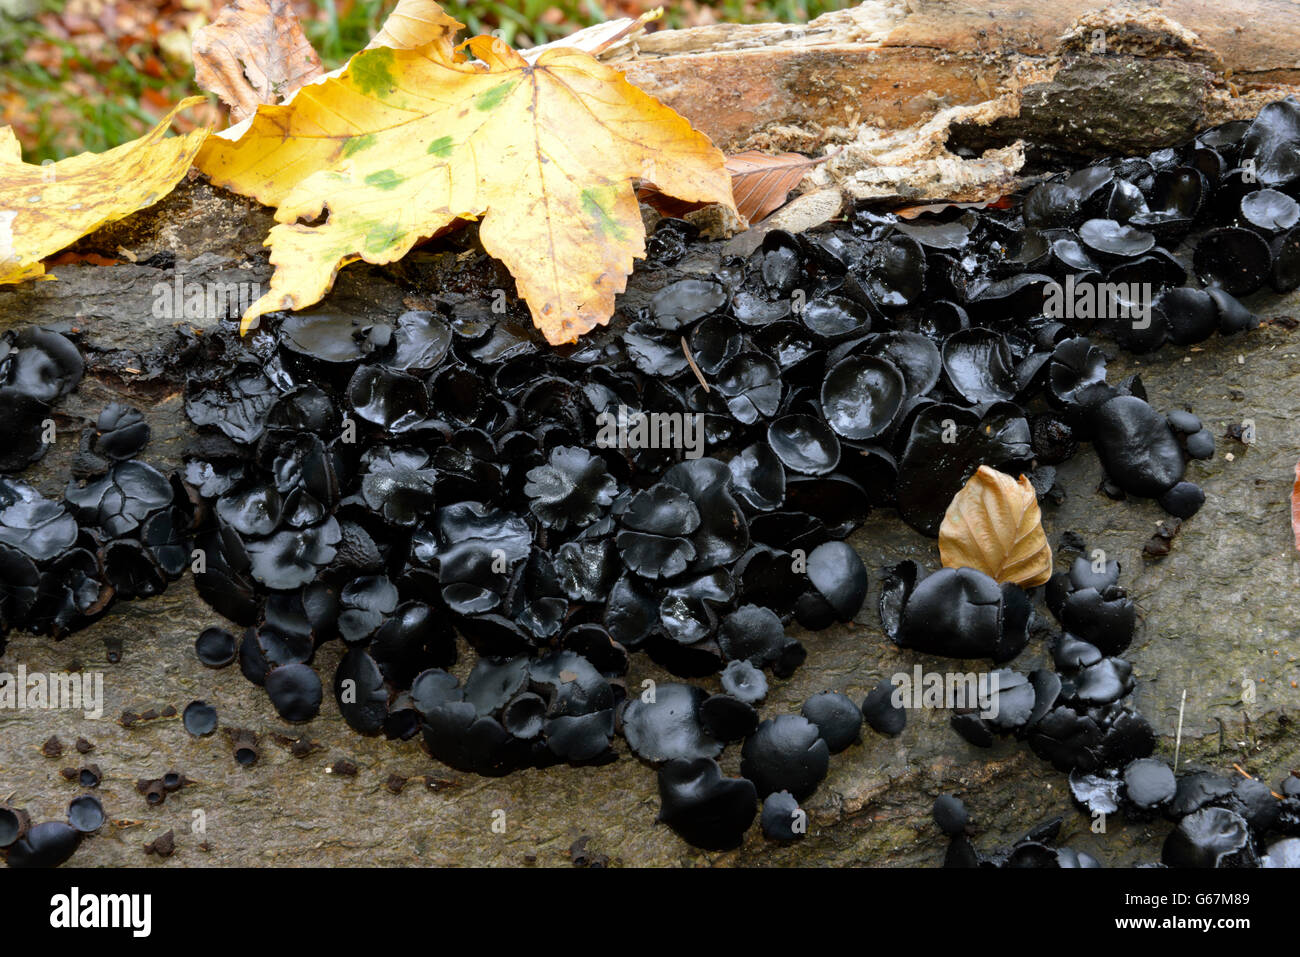 Black witches' butter, black jelly roll, warty jelly fungus / (Exidia truncata) - Stock Image